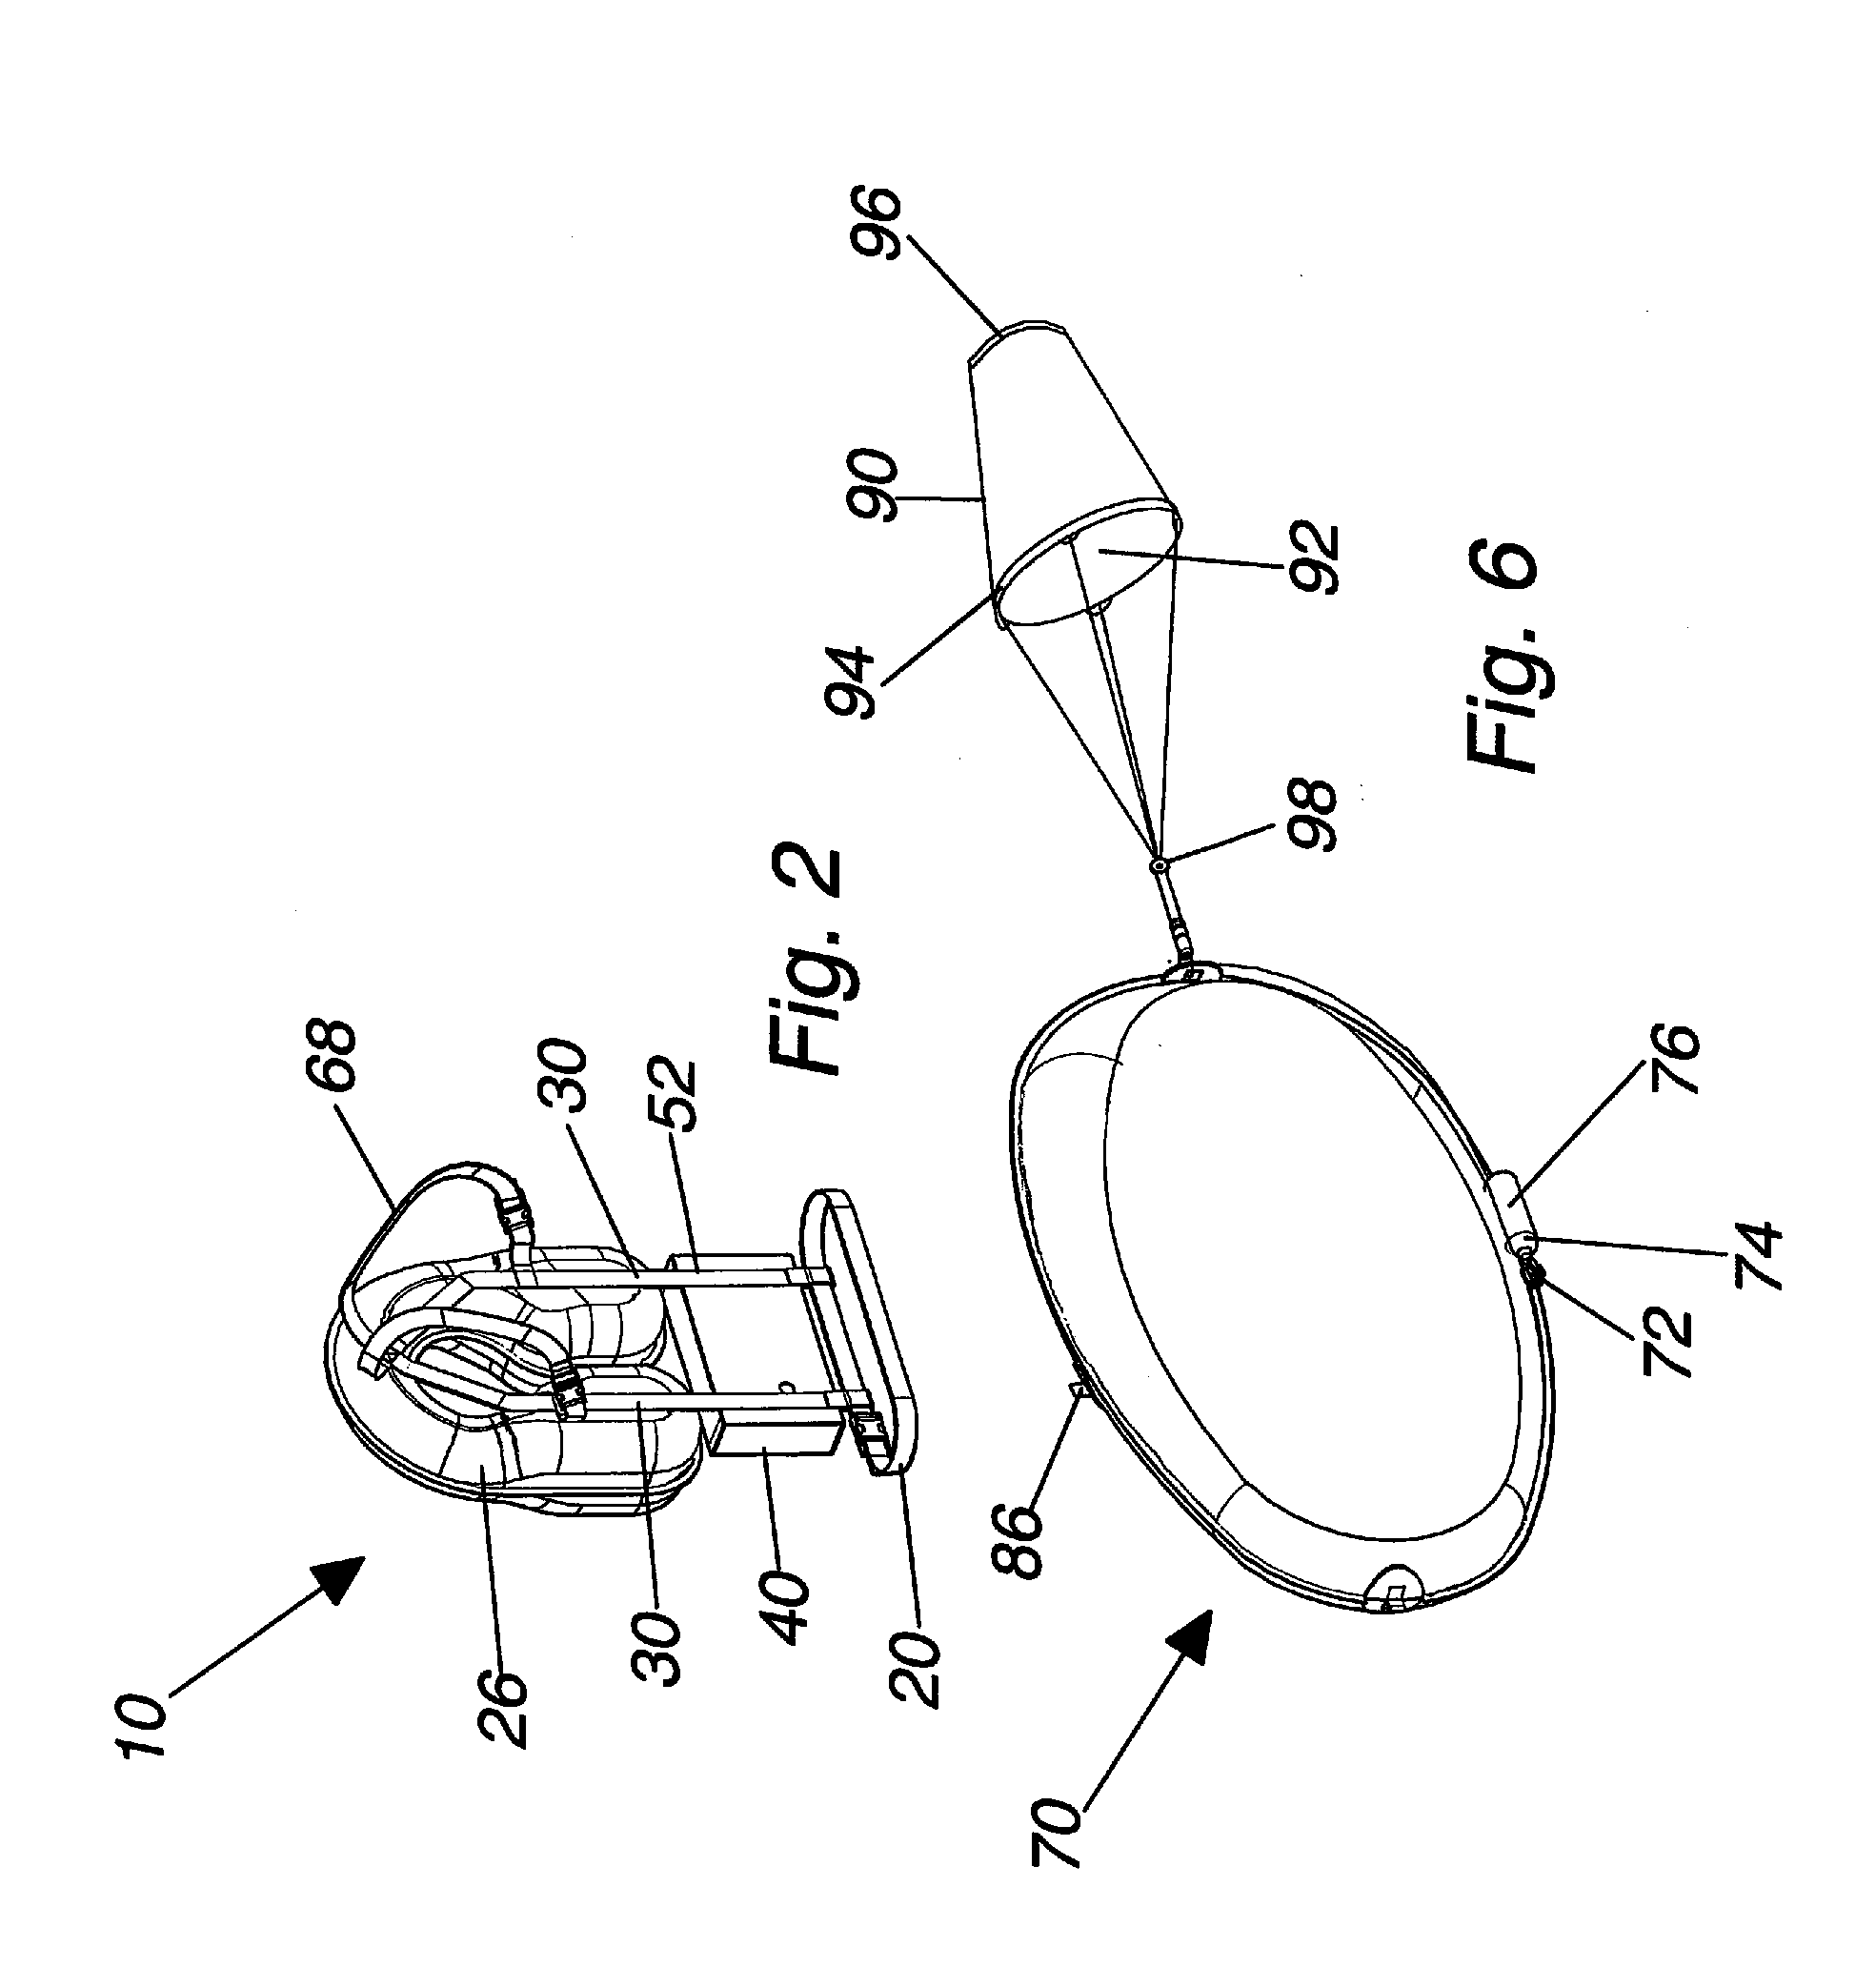 Using Inflatable Life Jacket With Harness Auto Electrical Wiring Lincoln 400as 50 Diagram Related International 460